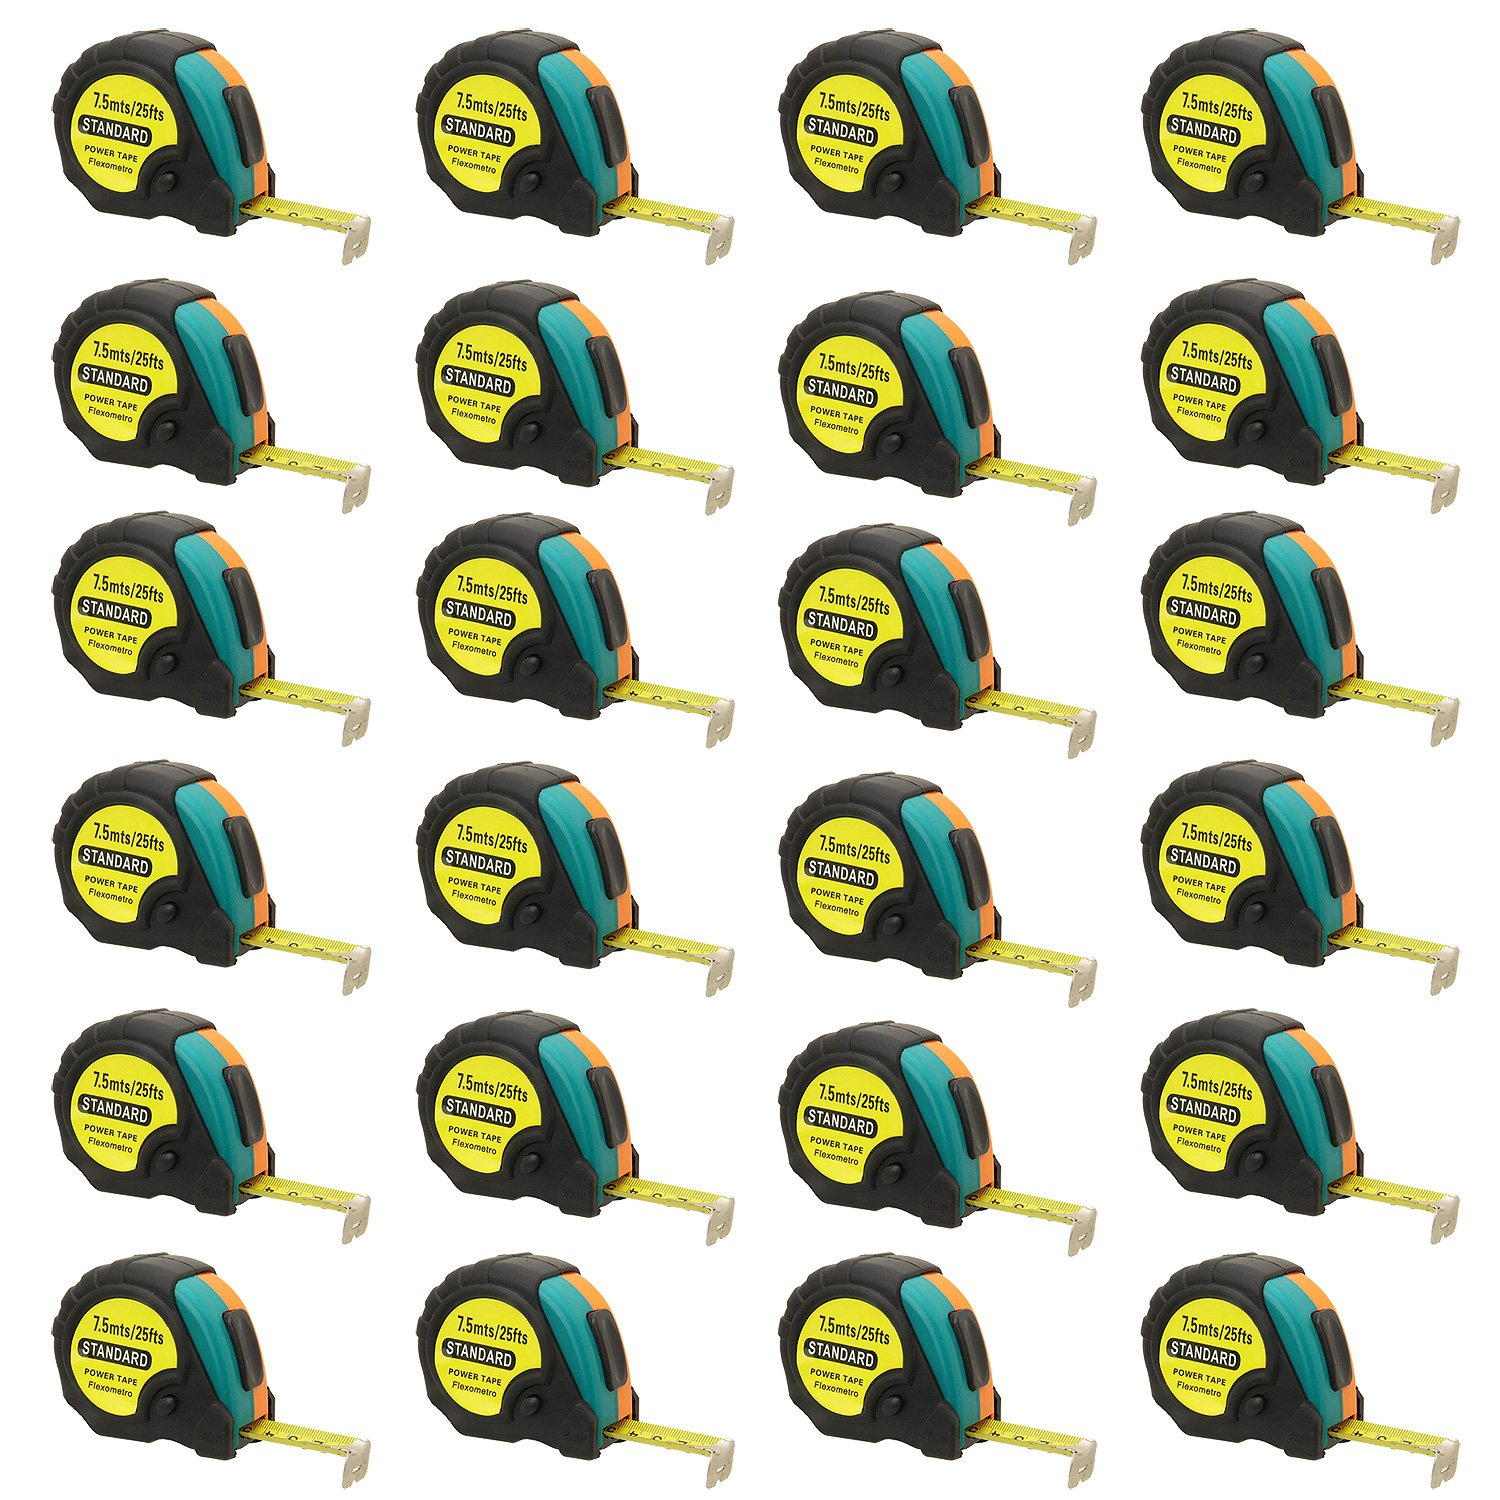 25ft Power Tape Measure Auto Lock (25-Foot 24-Pack)